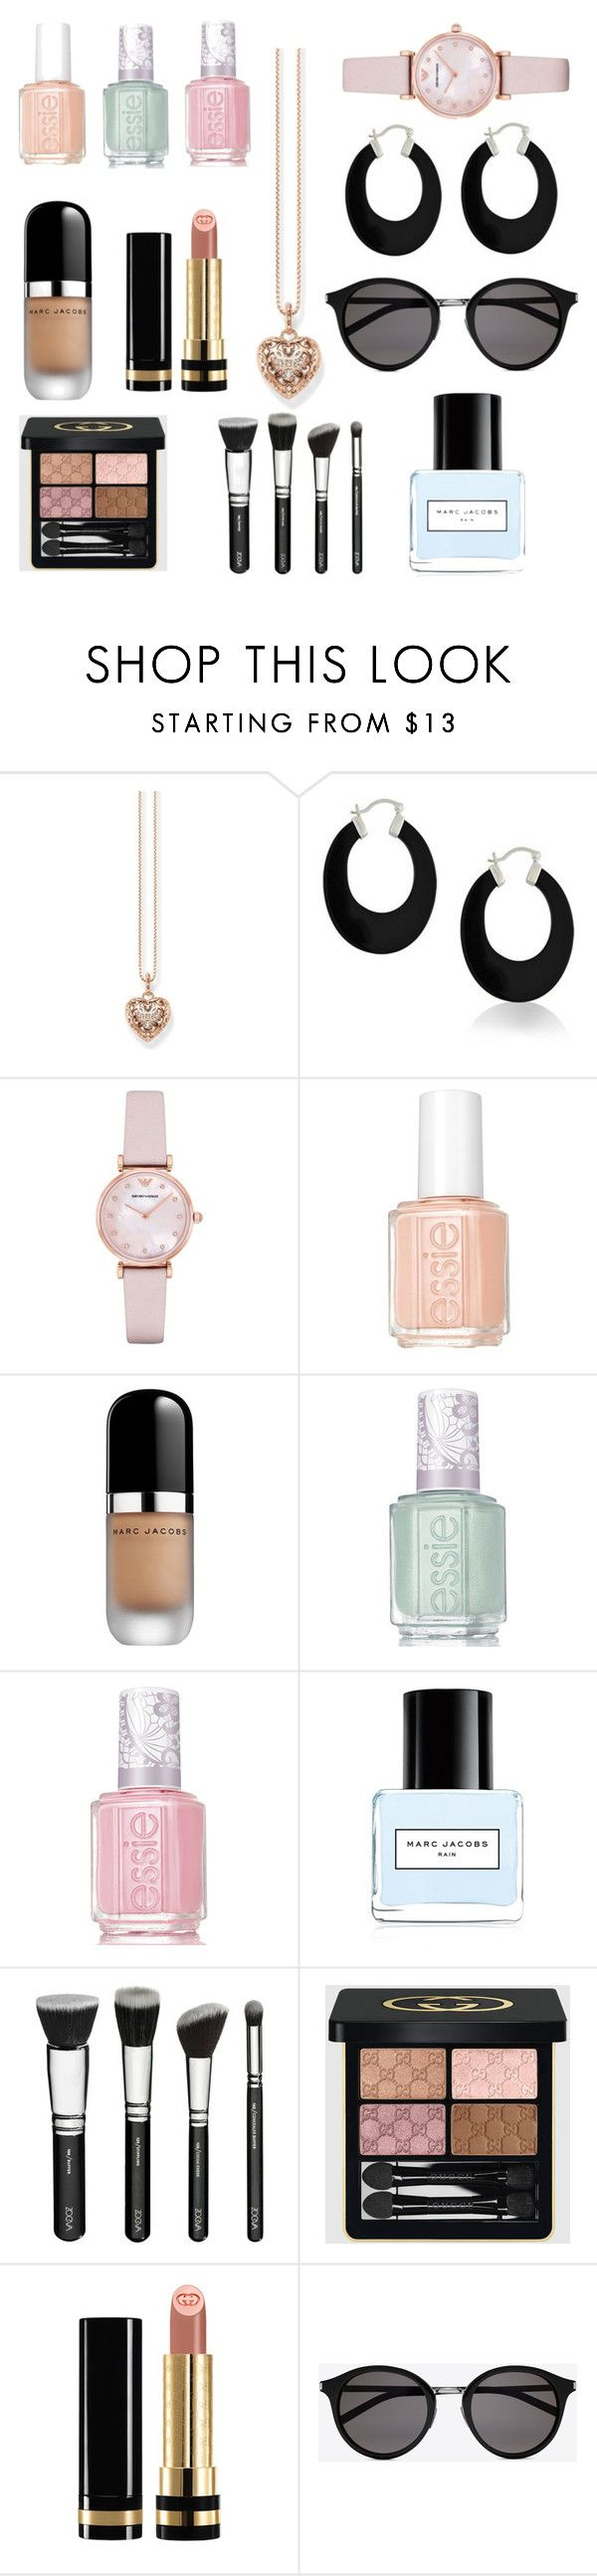 """""""Sunday style accessories"""" by jasmine-clarine on Polyvore featuring beauty, Thomas Sabo, Bling Jewelry, Emporio Armani, Essie, Marc Jacobs, Gucci, Yves Saint Laurent, nailpolish and accessories"""